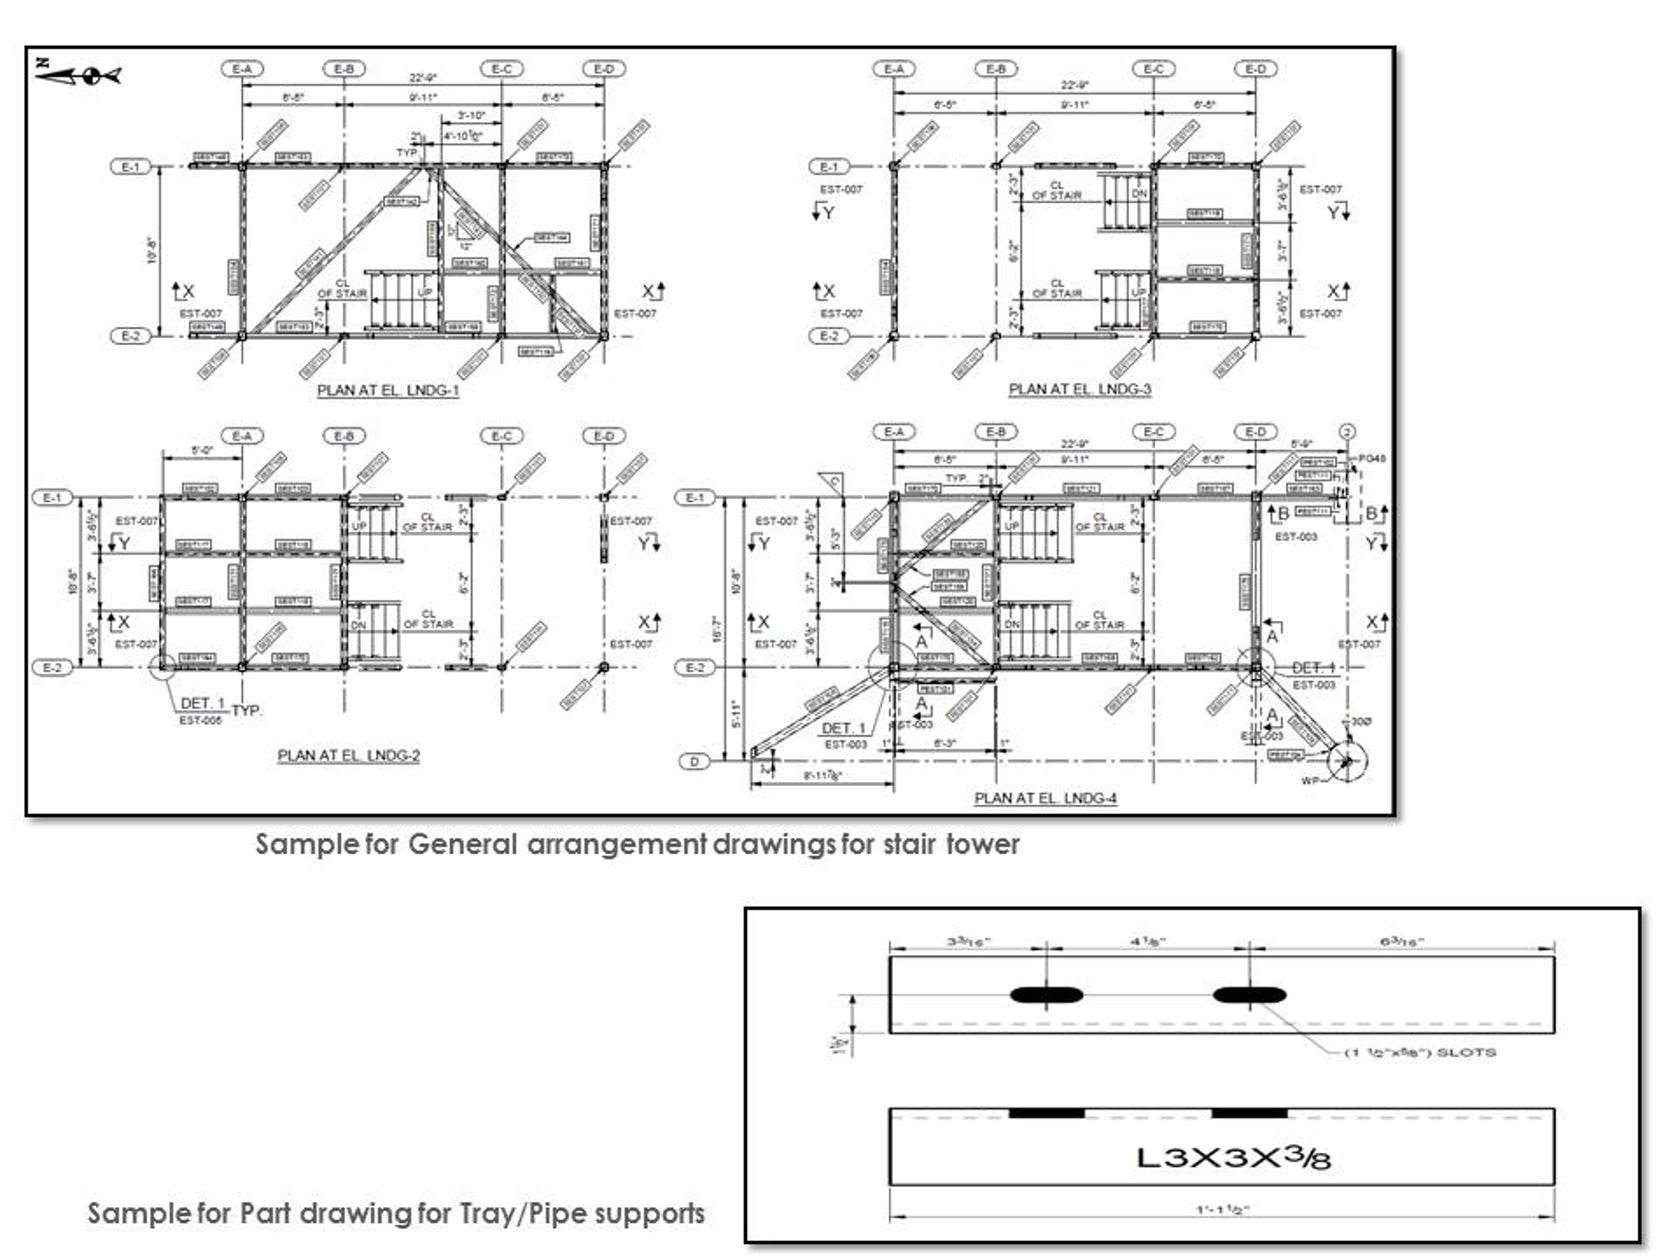 Structural Steel Detailing for Pipe and Tray Supports of